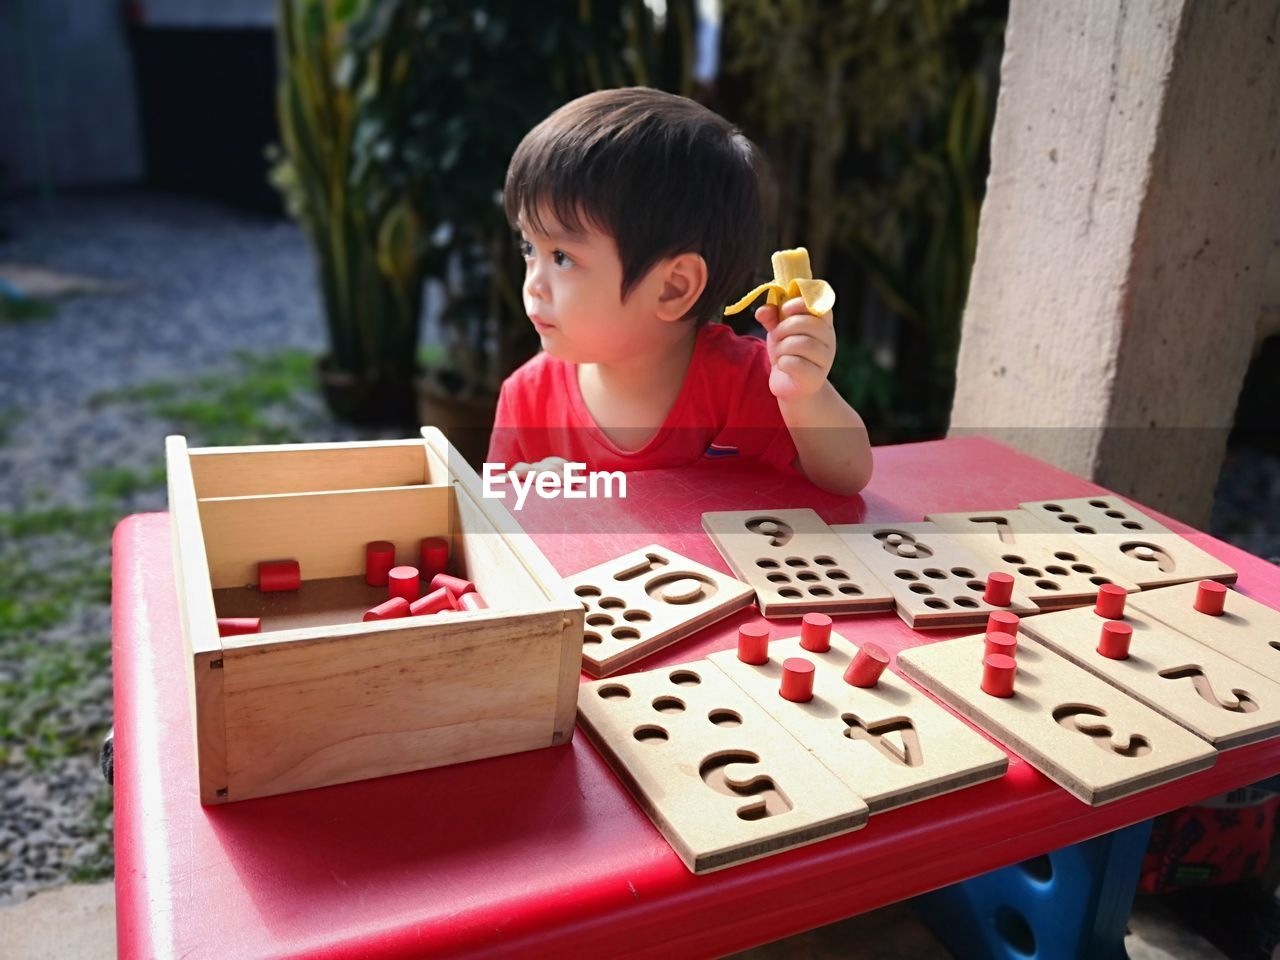 Cute boy playing with toys on table